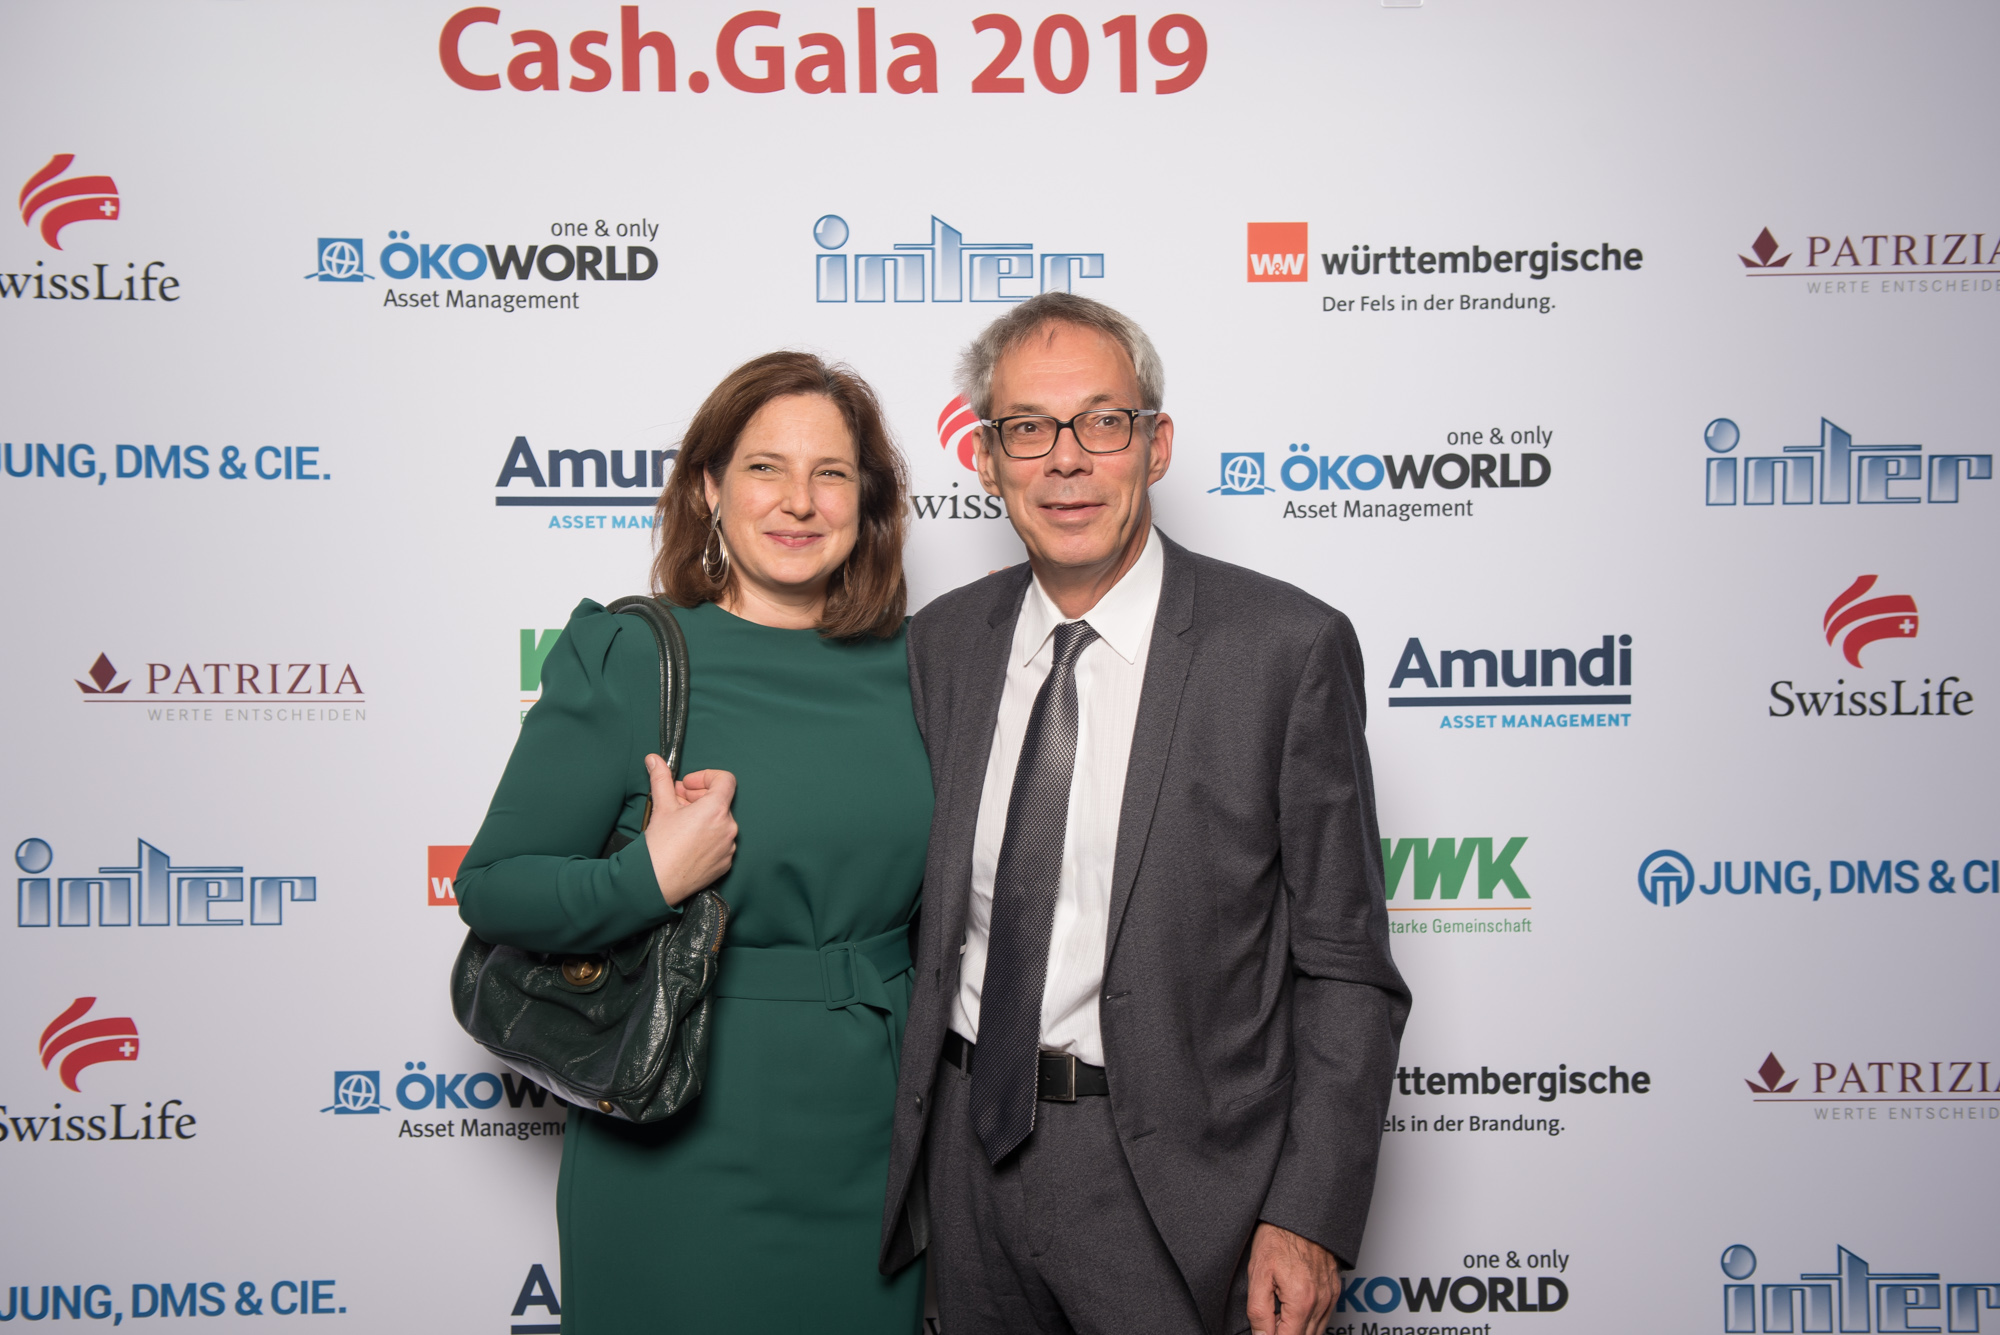 CashGala 2019 0053 AM DSC7097 in Cash.Gala 2019